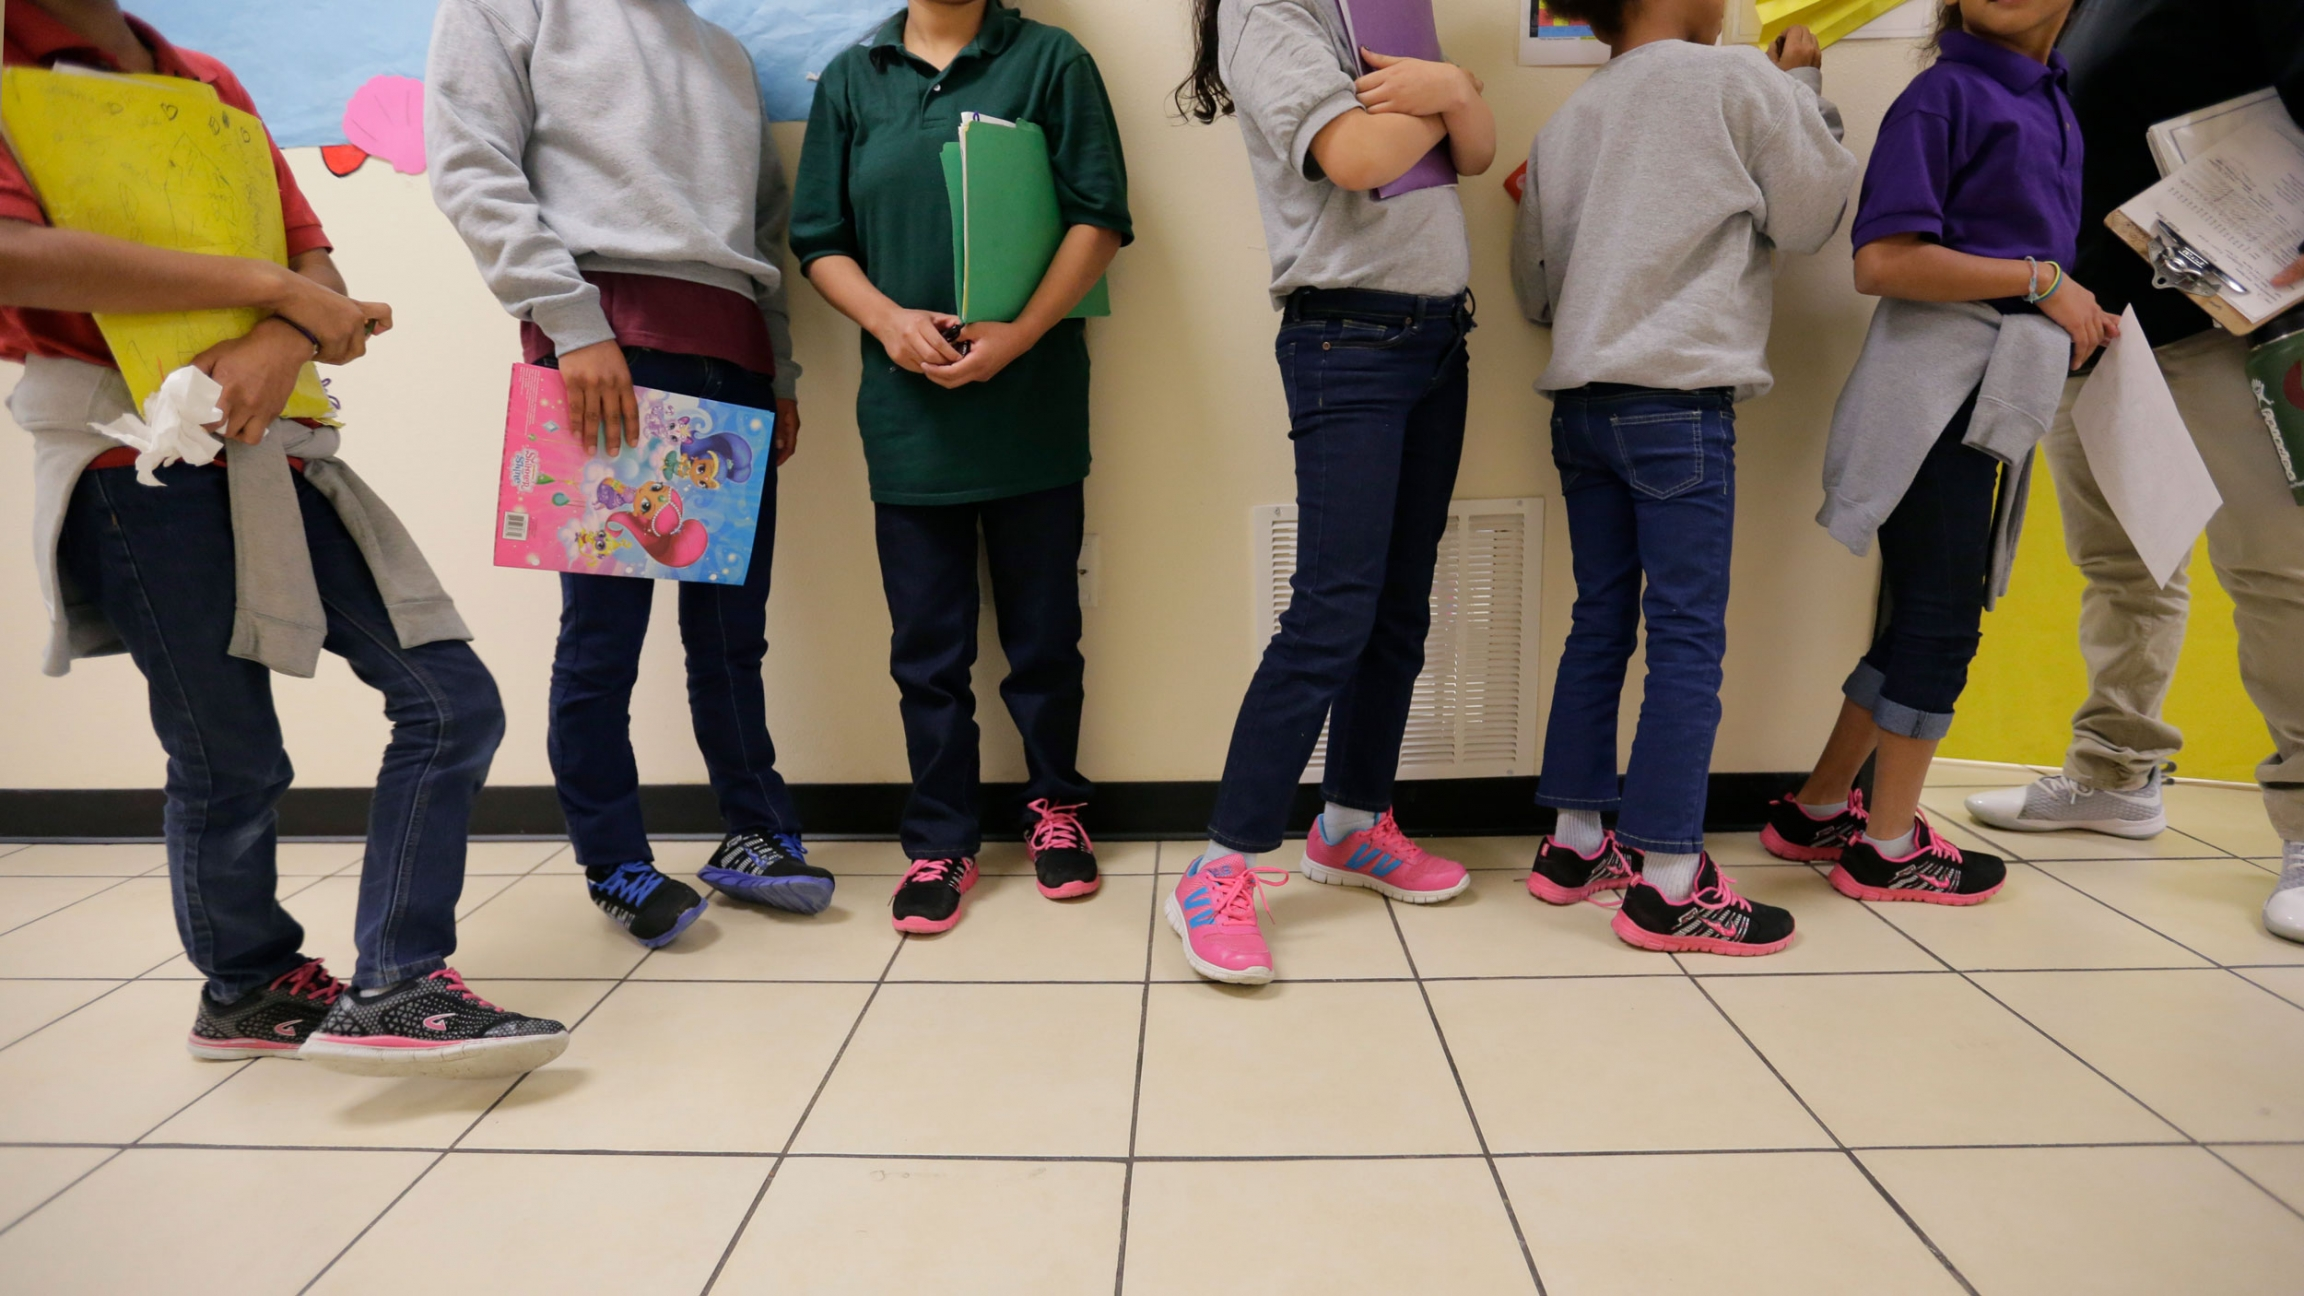 Several young people are show from their neck down and wearing sweatshirts and jeans and many with pink tennis shoes.